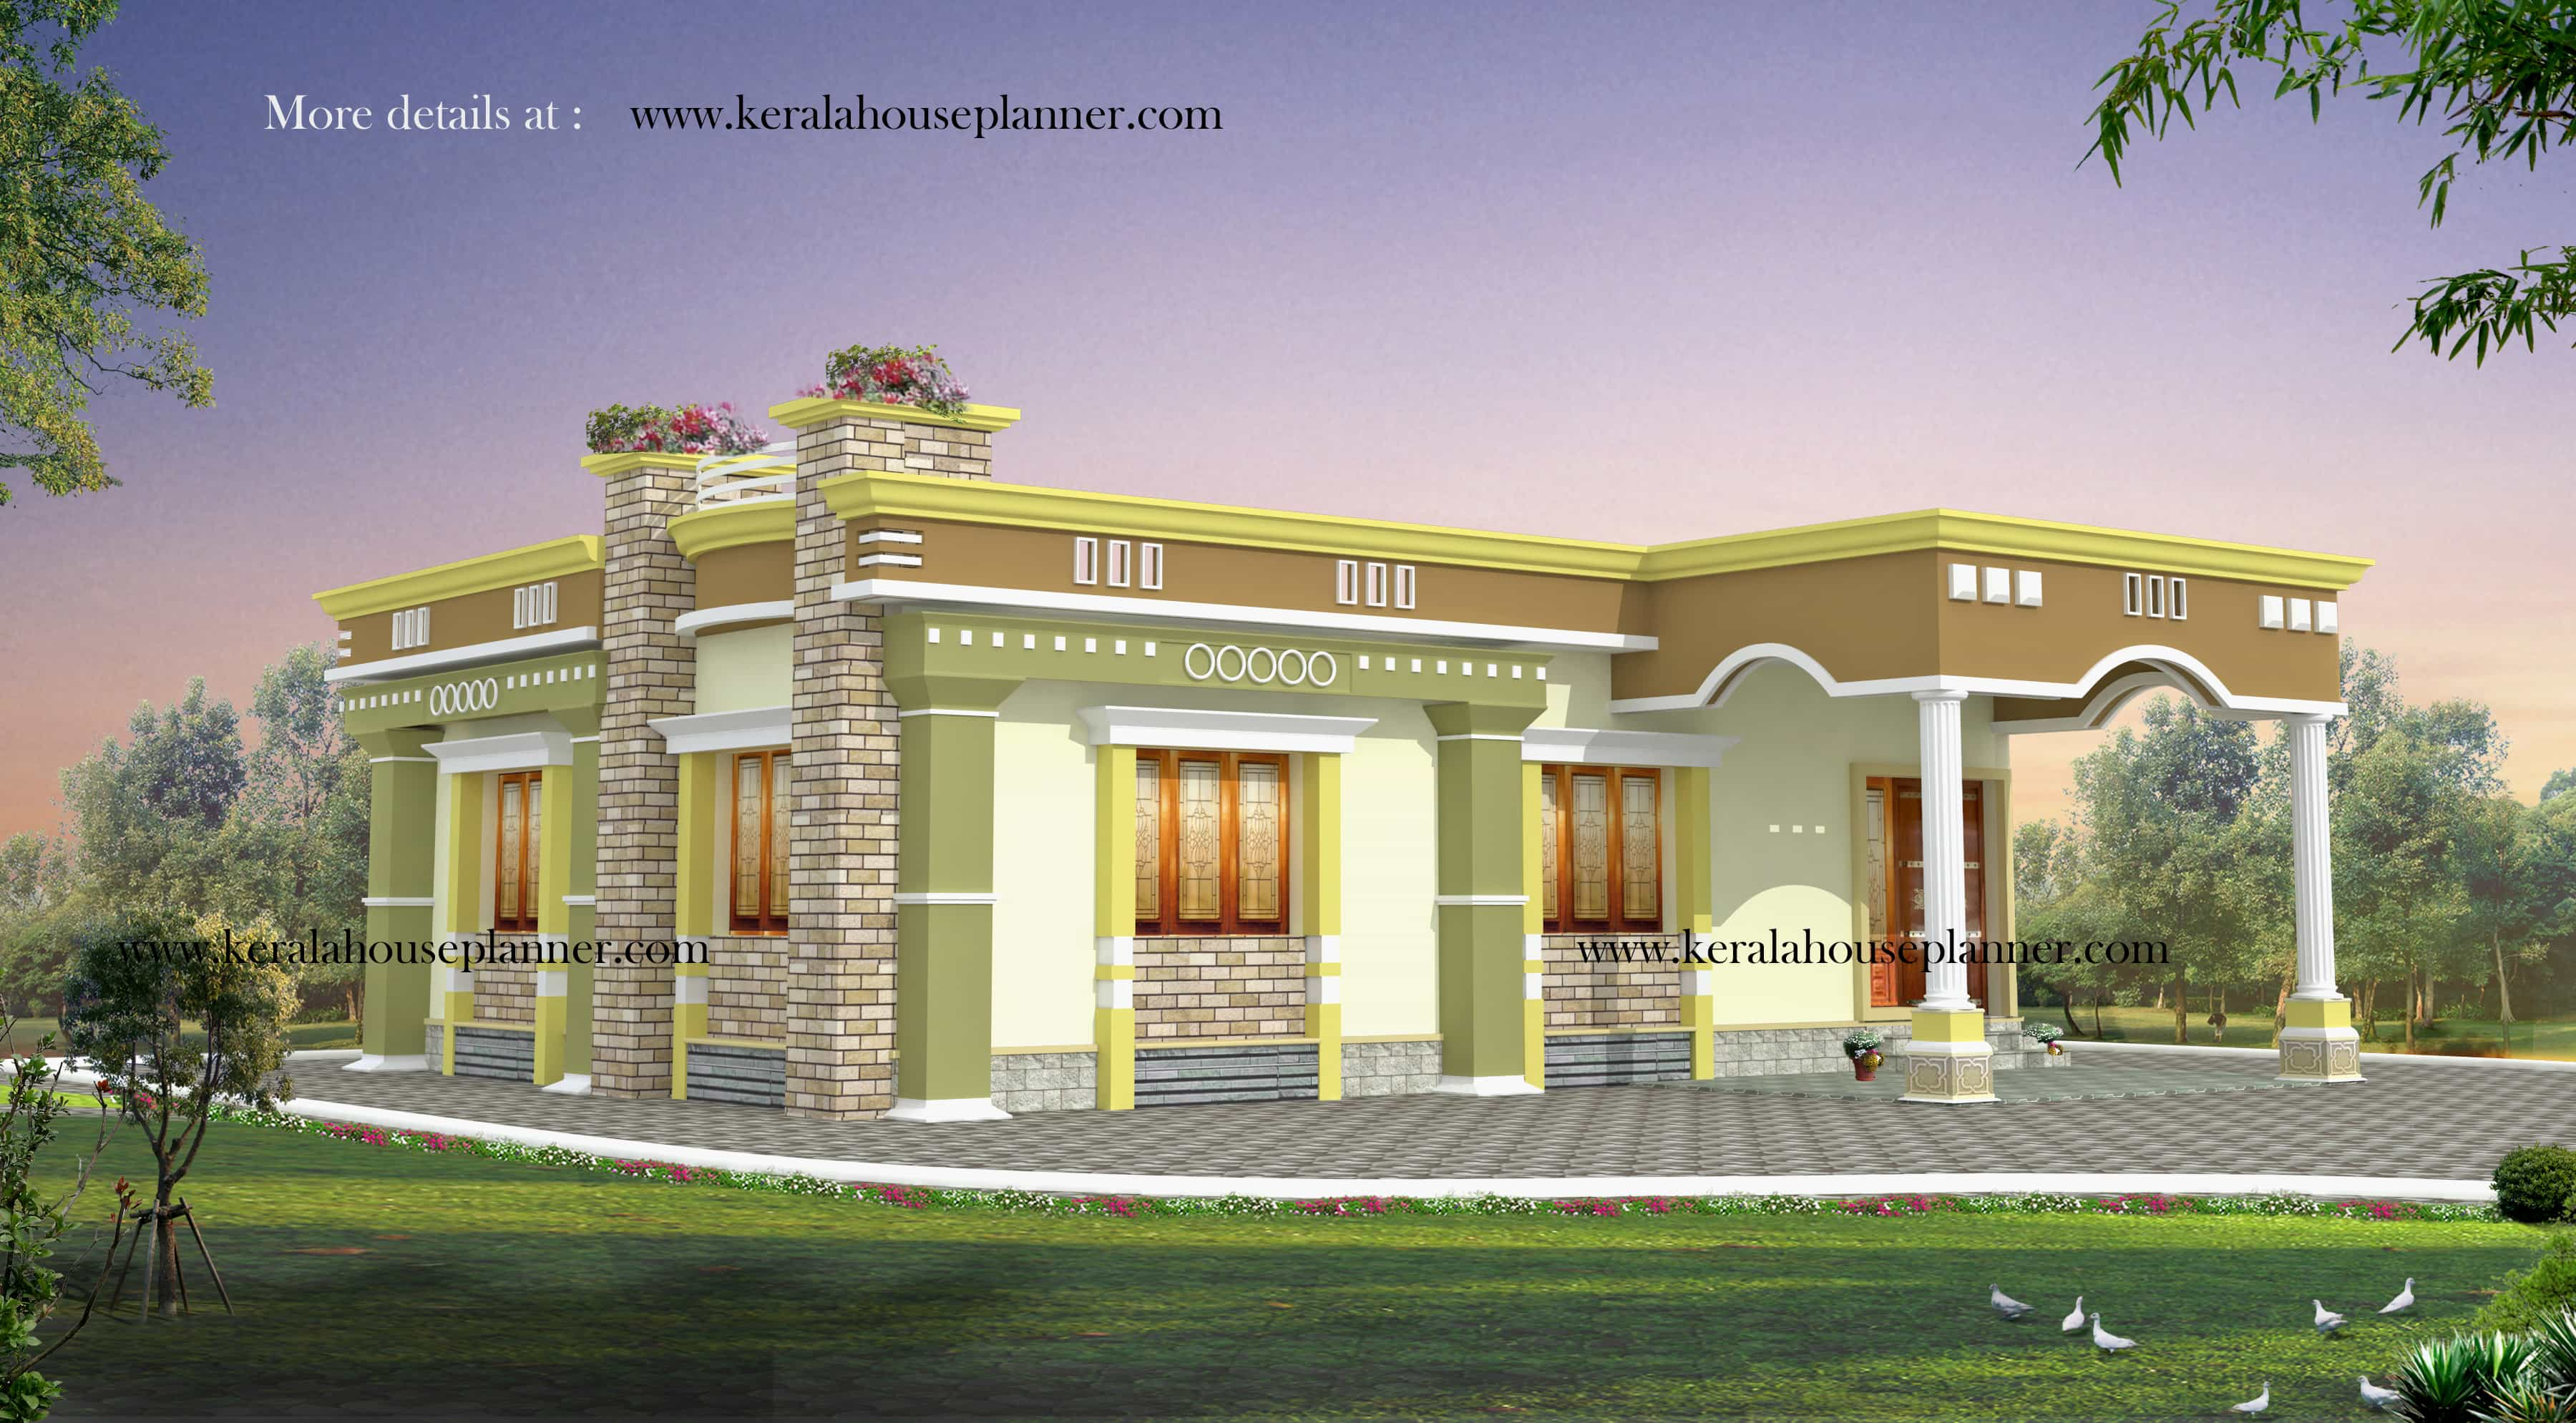 Kerala house plans 1200 sq ft with photos khp for Beautiful kerala house plans